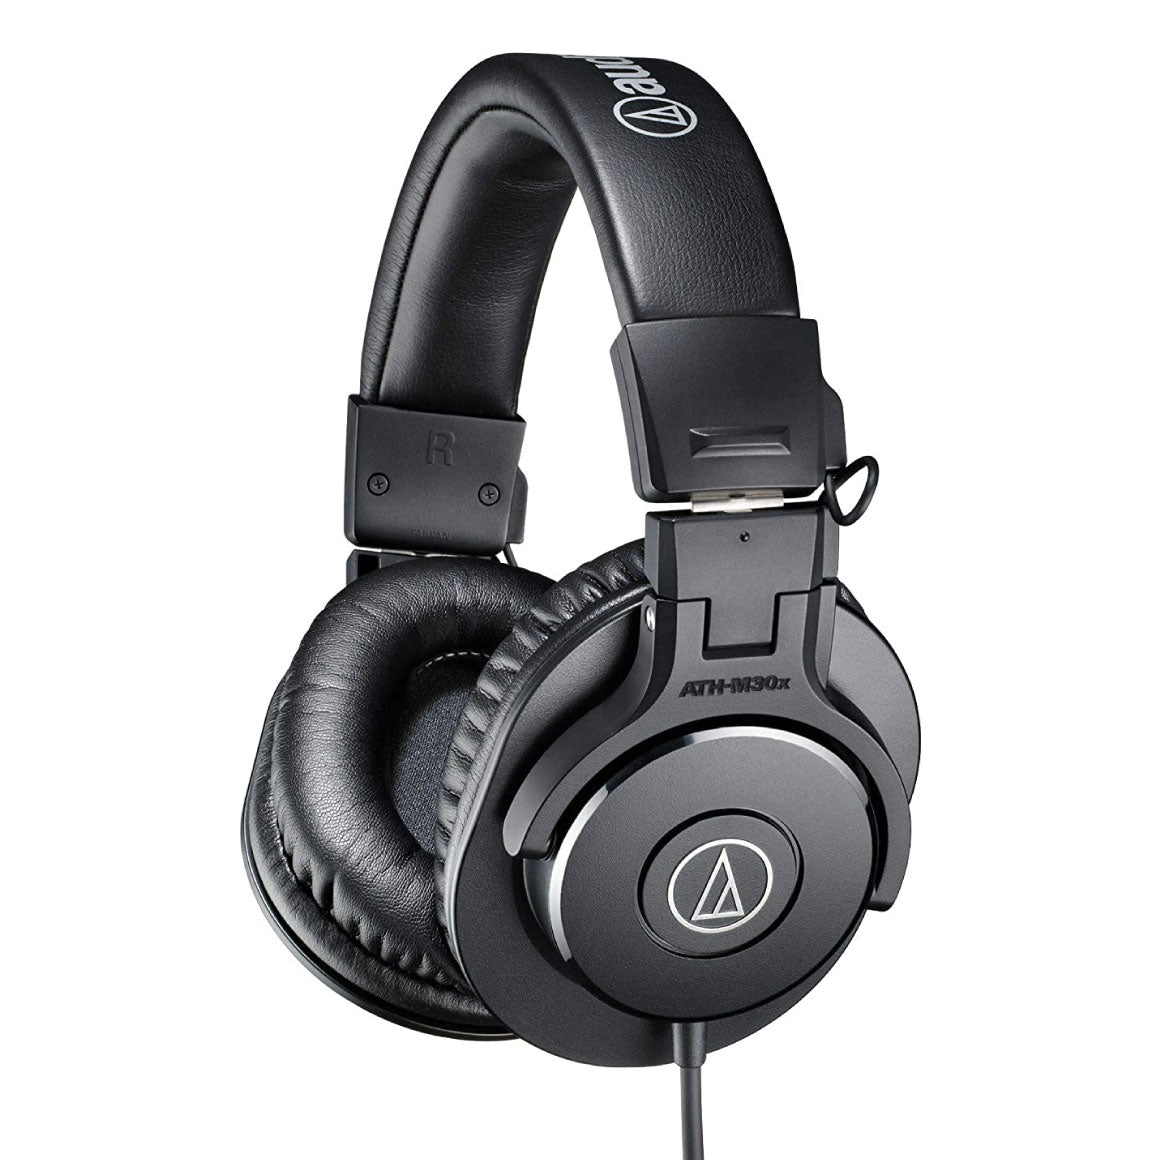 Audio-Technica - ATH-M30xvs competitors